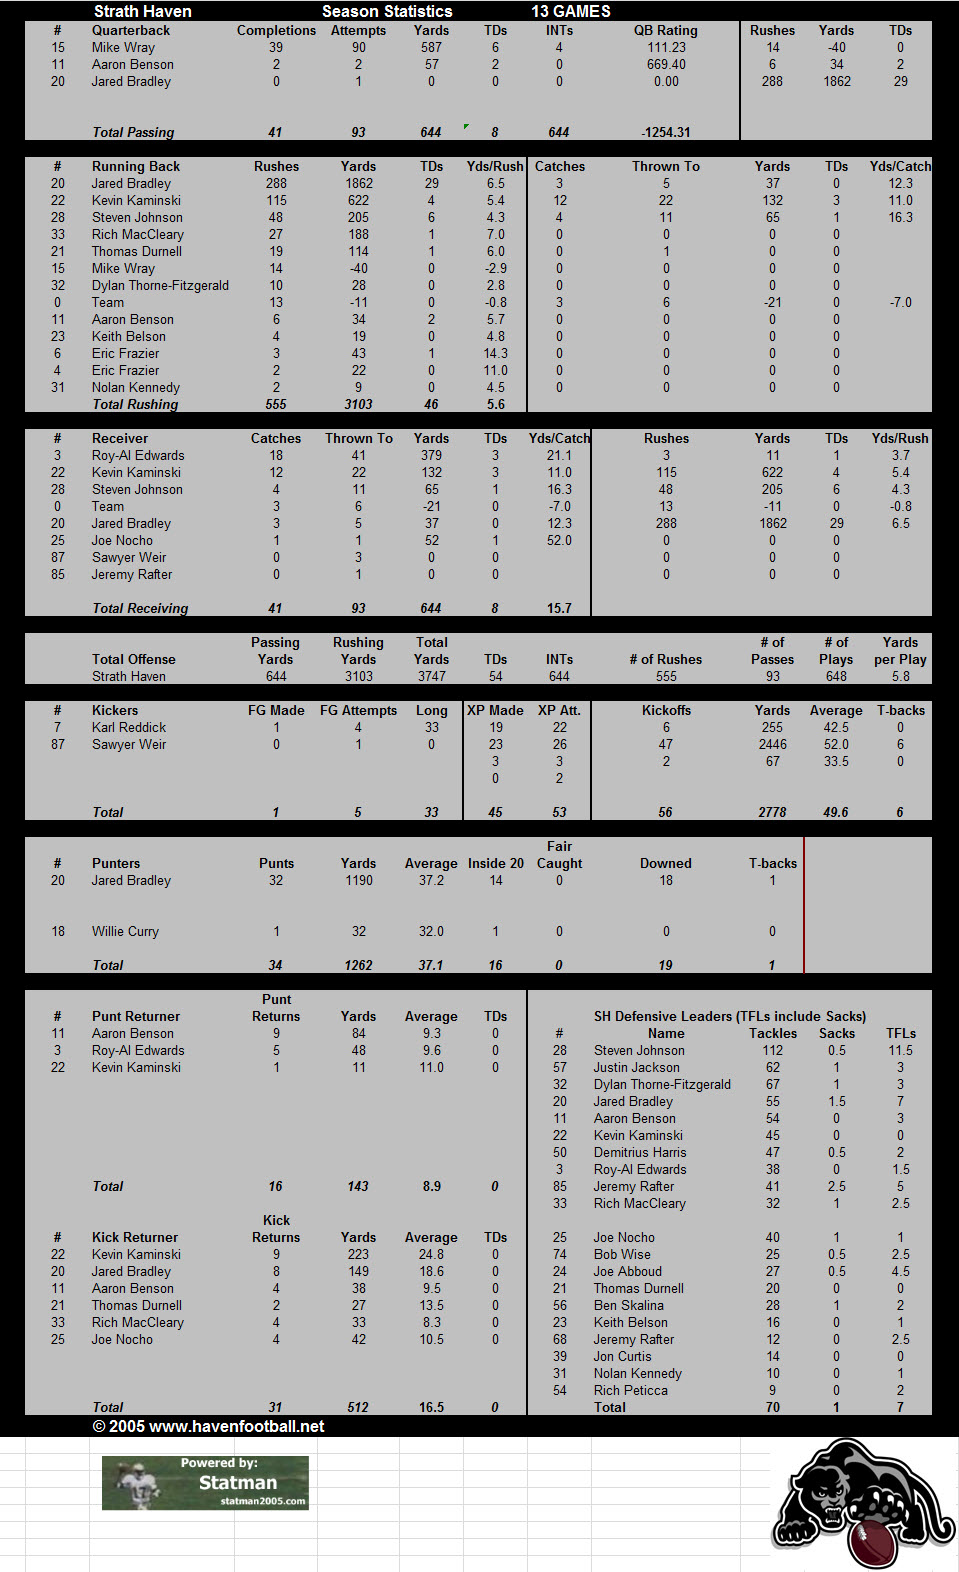 2005 Offensive Stats